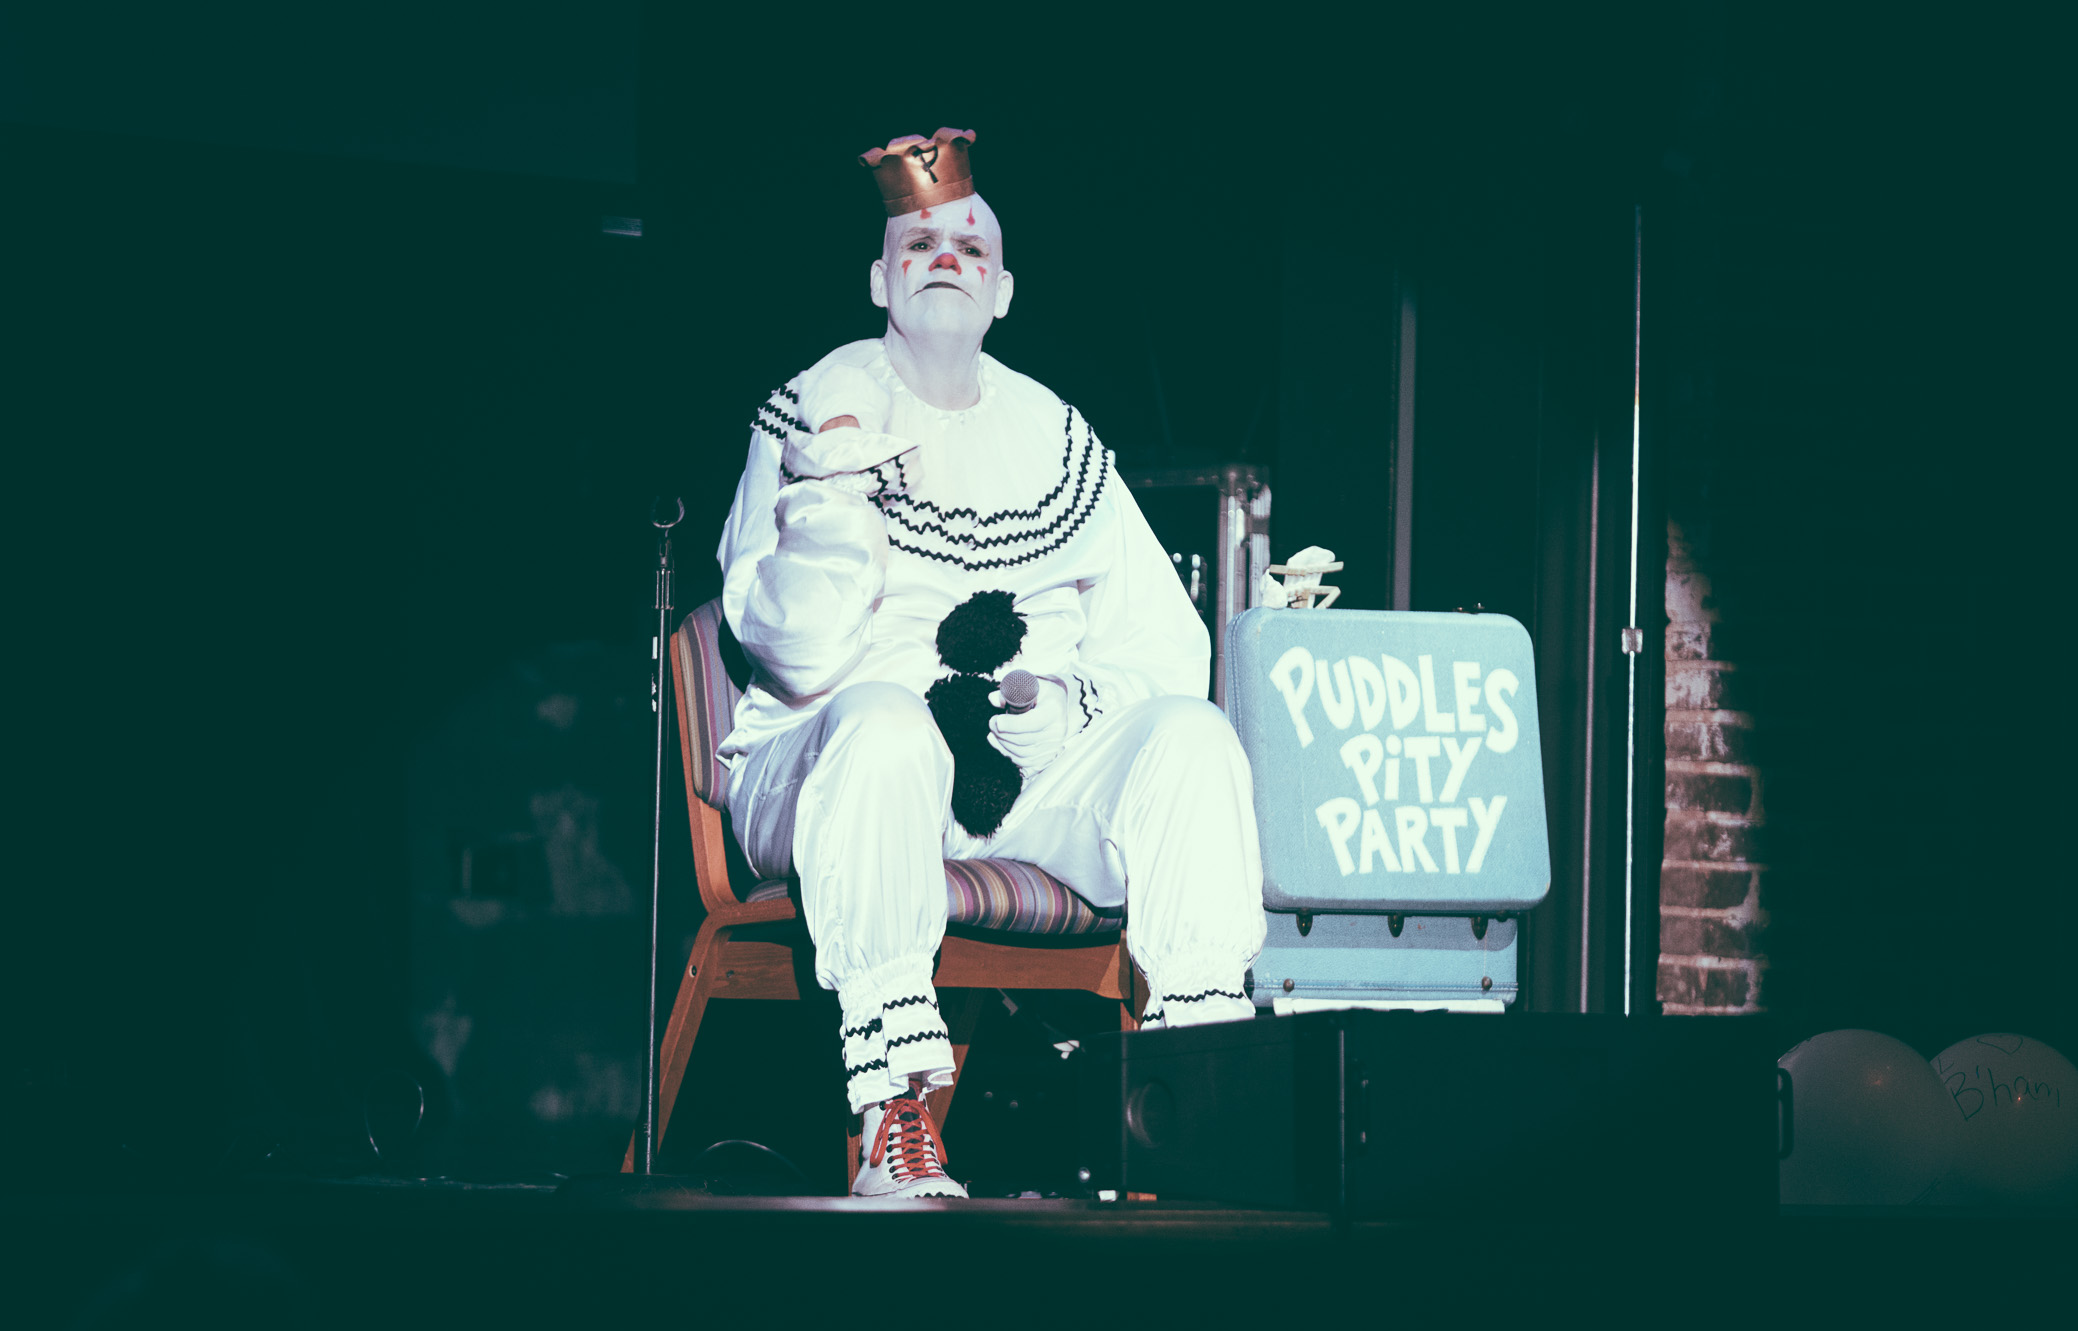 Puddles Pity Party performs in concert at Iron City in Birmingham, Alabama on July 29th, 2017. (Photo by David A. Smith/DSmithScenes)